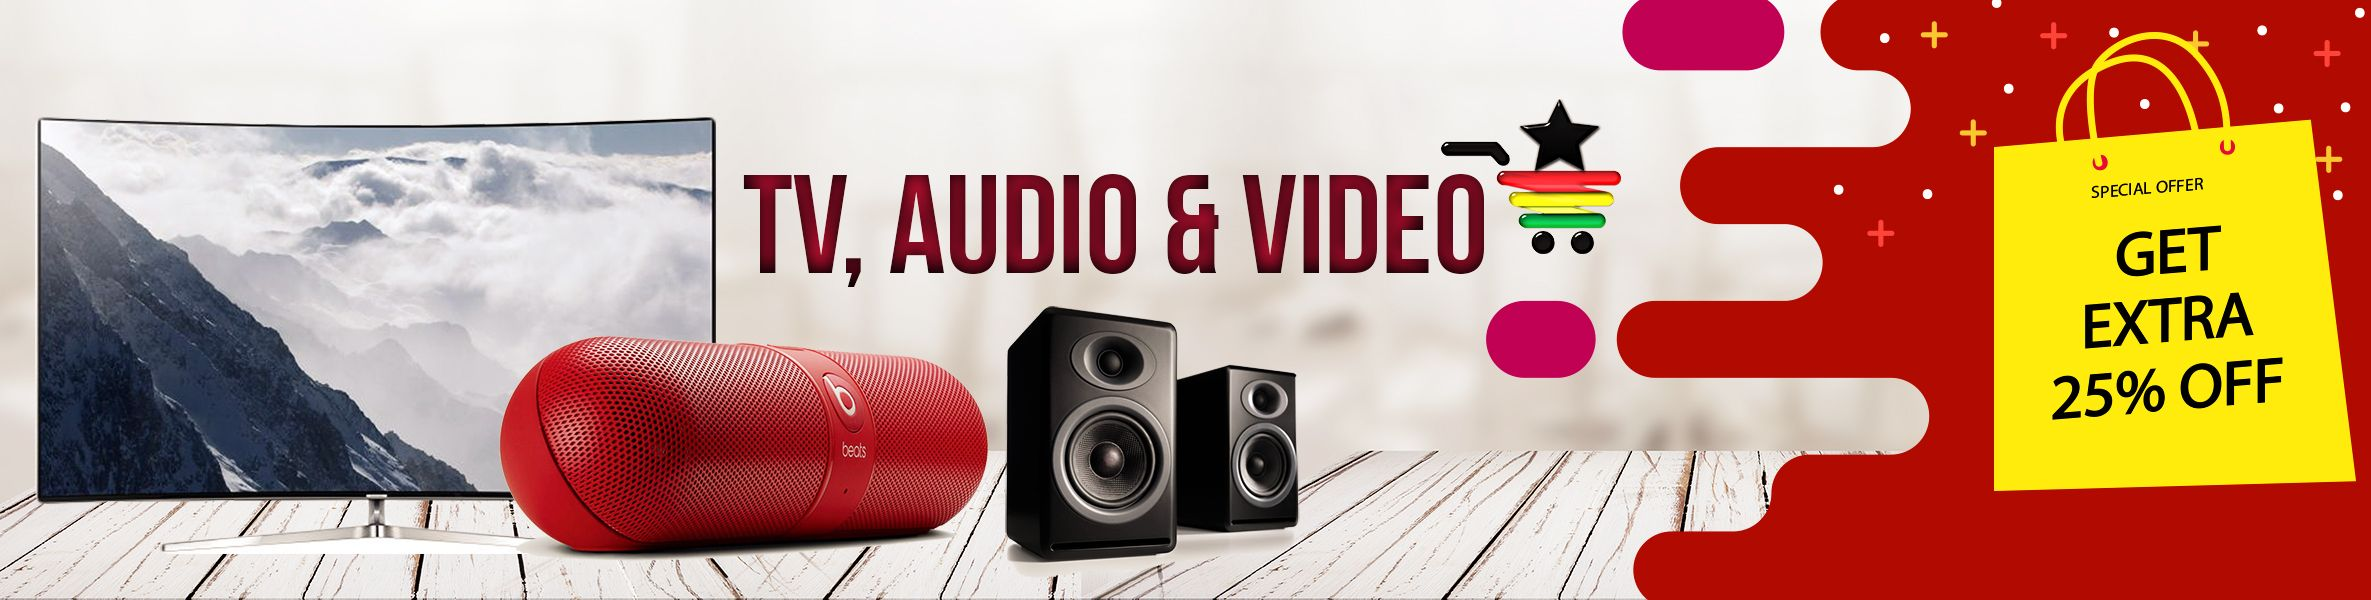 TV audio video